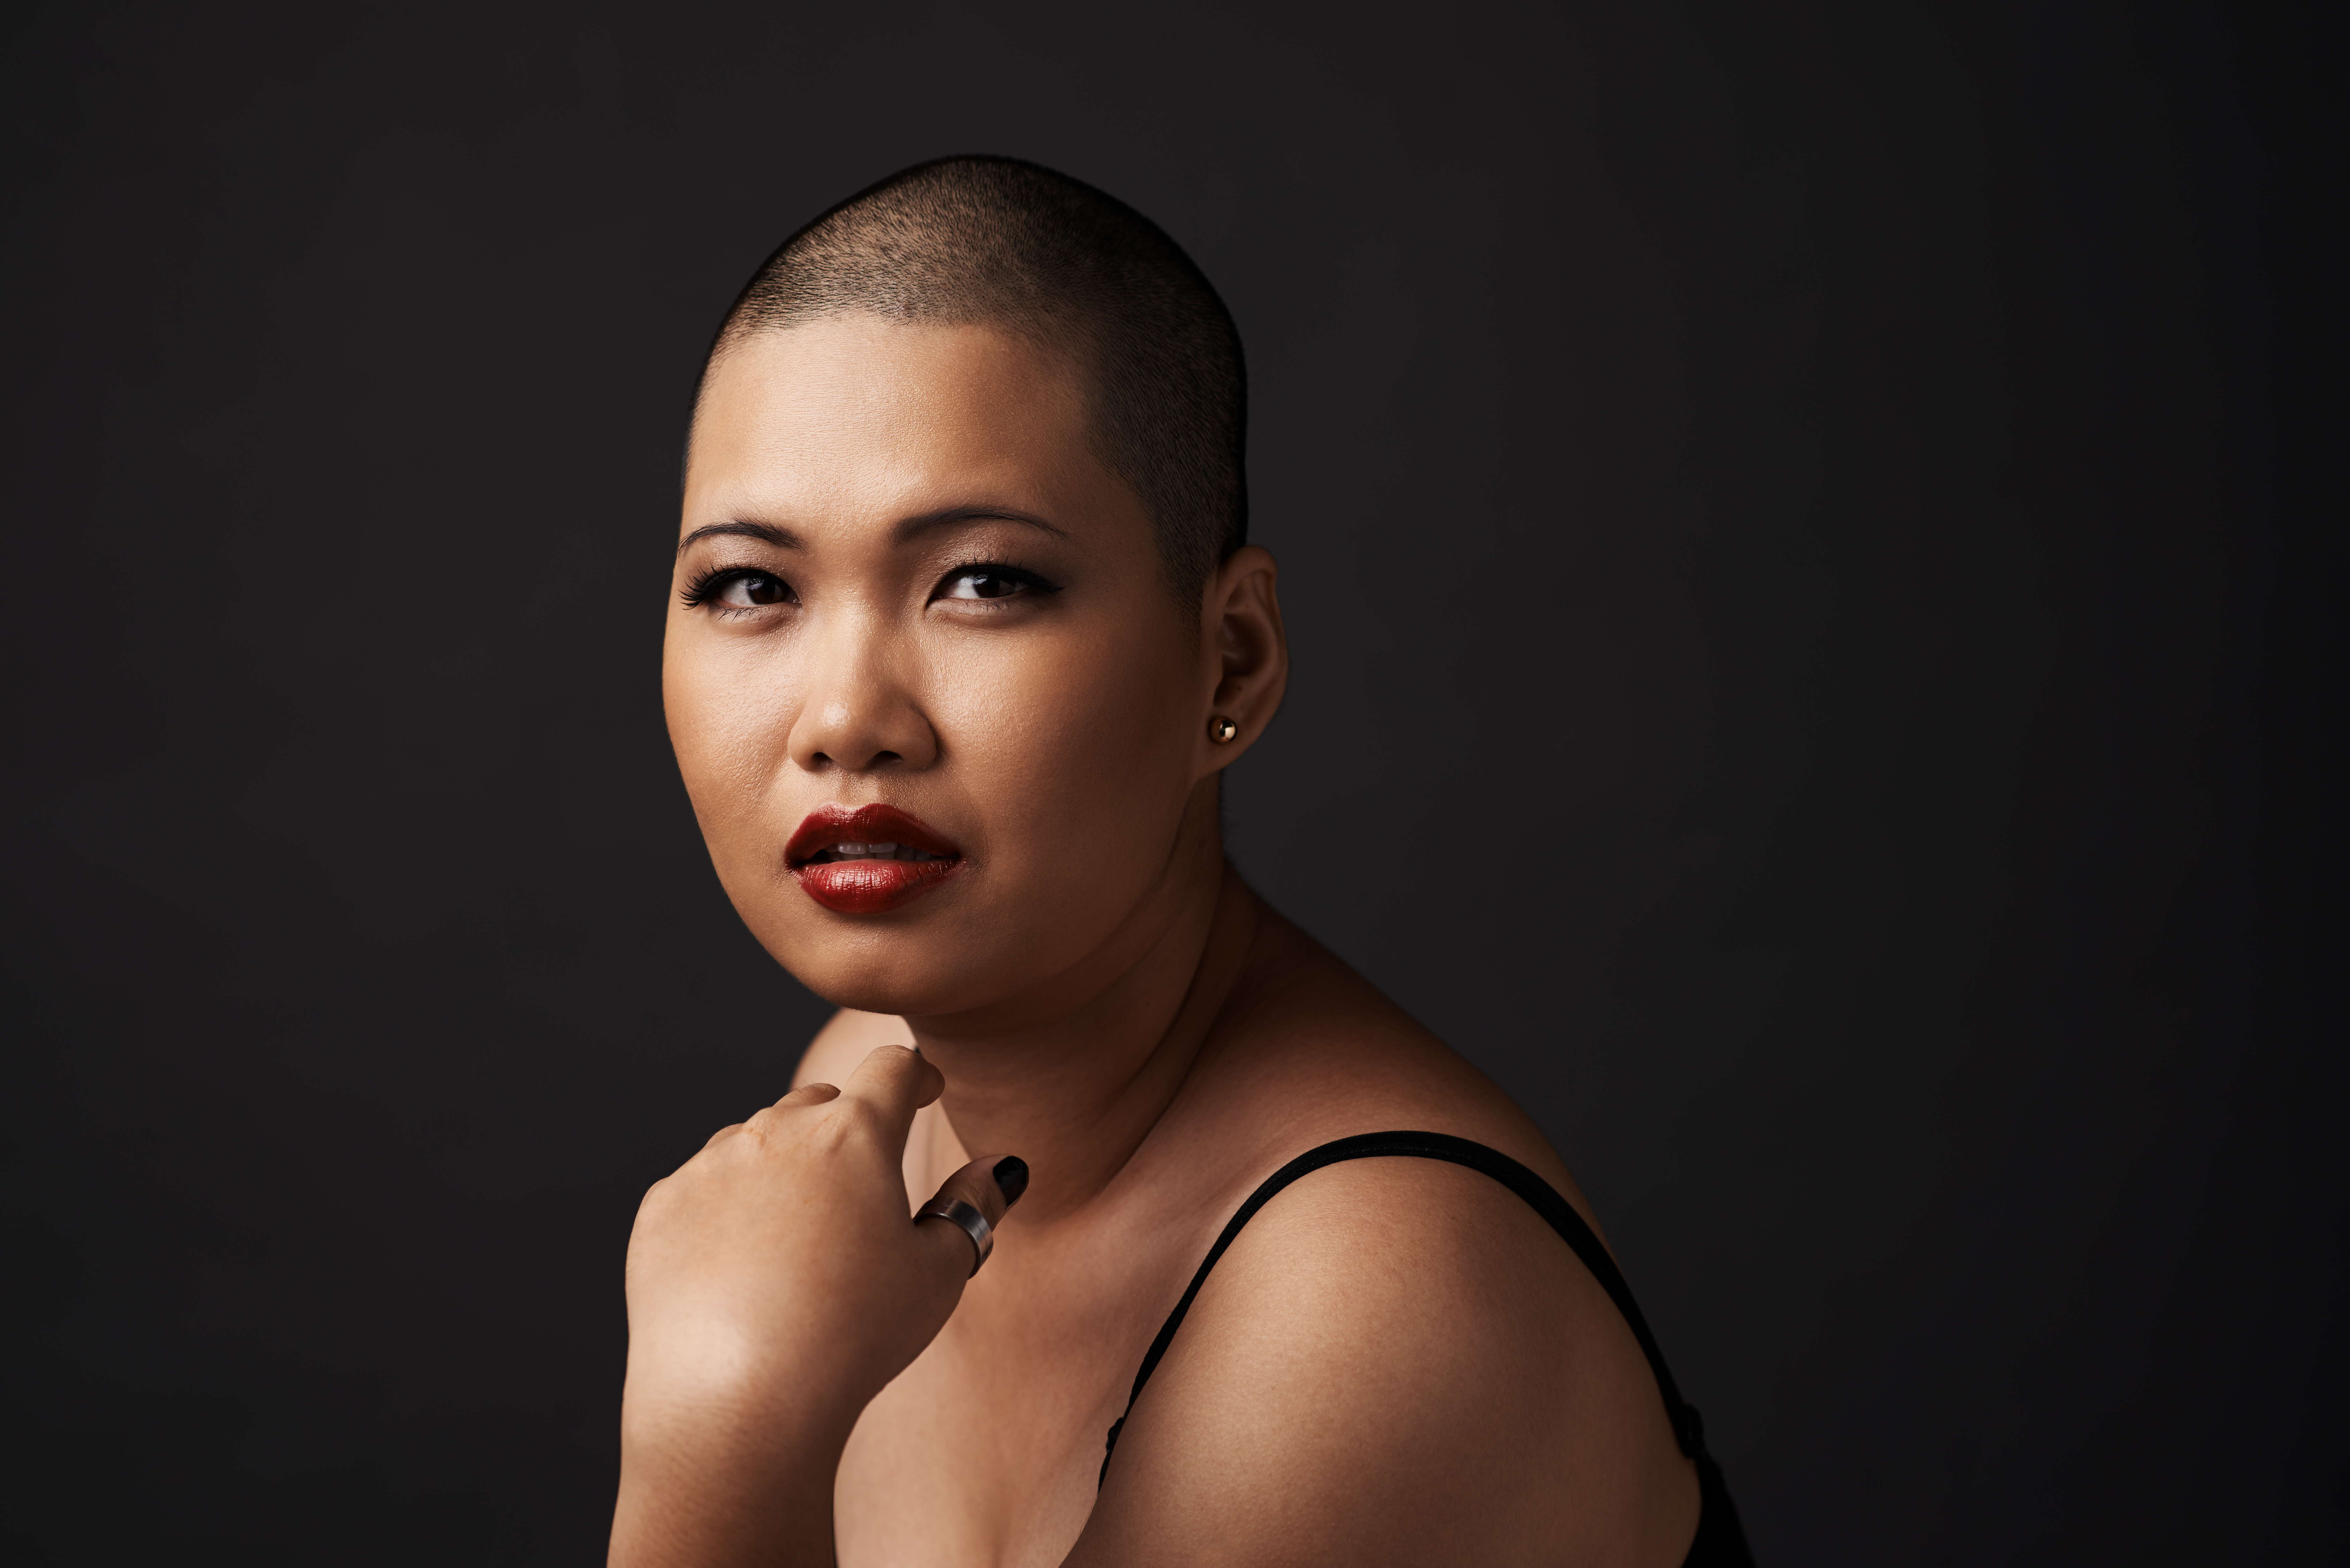 asian woman with a buzz cut hairstyle.jpg